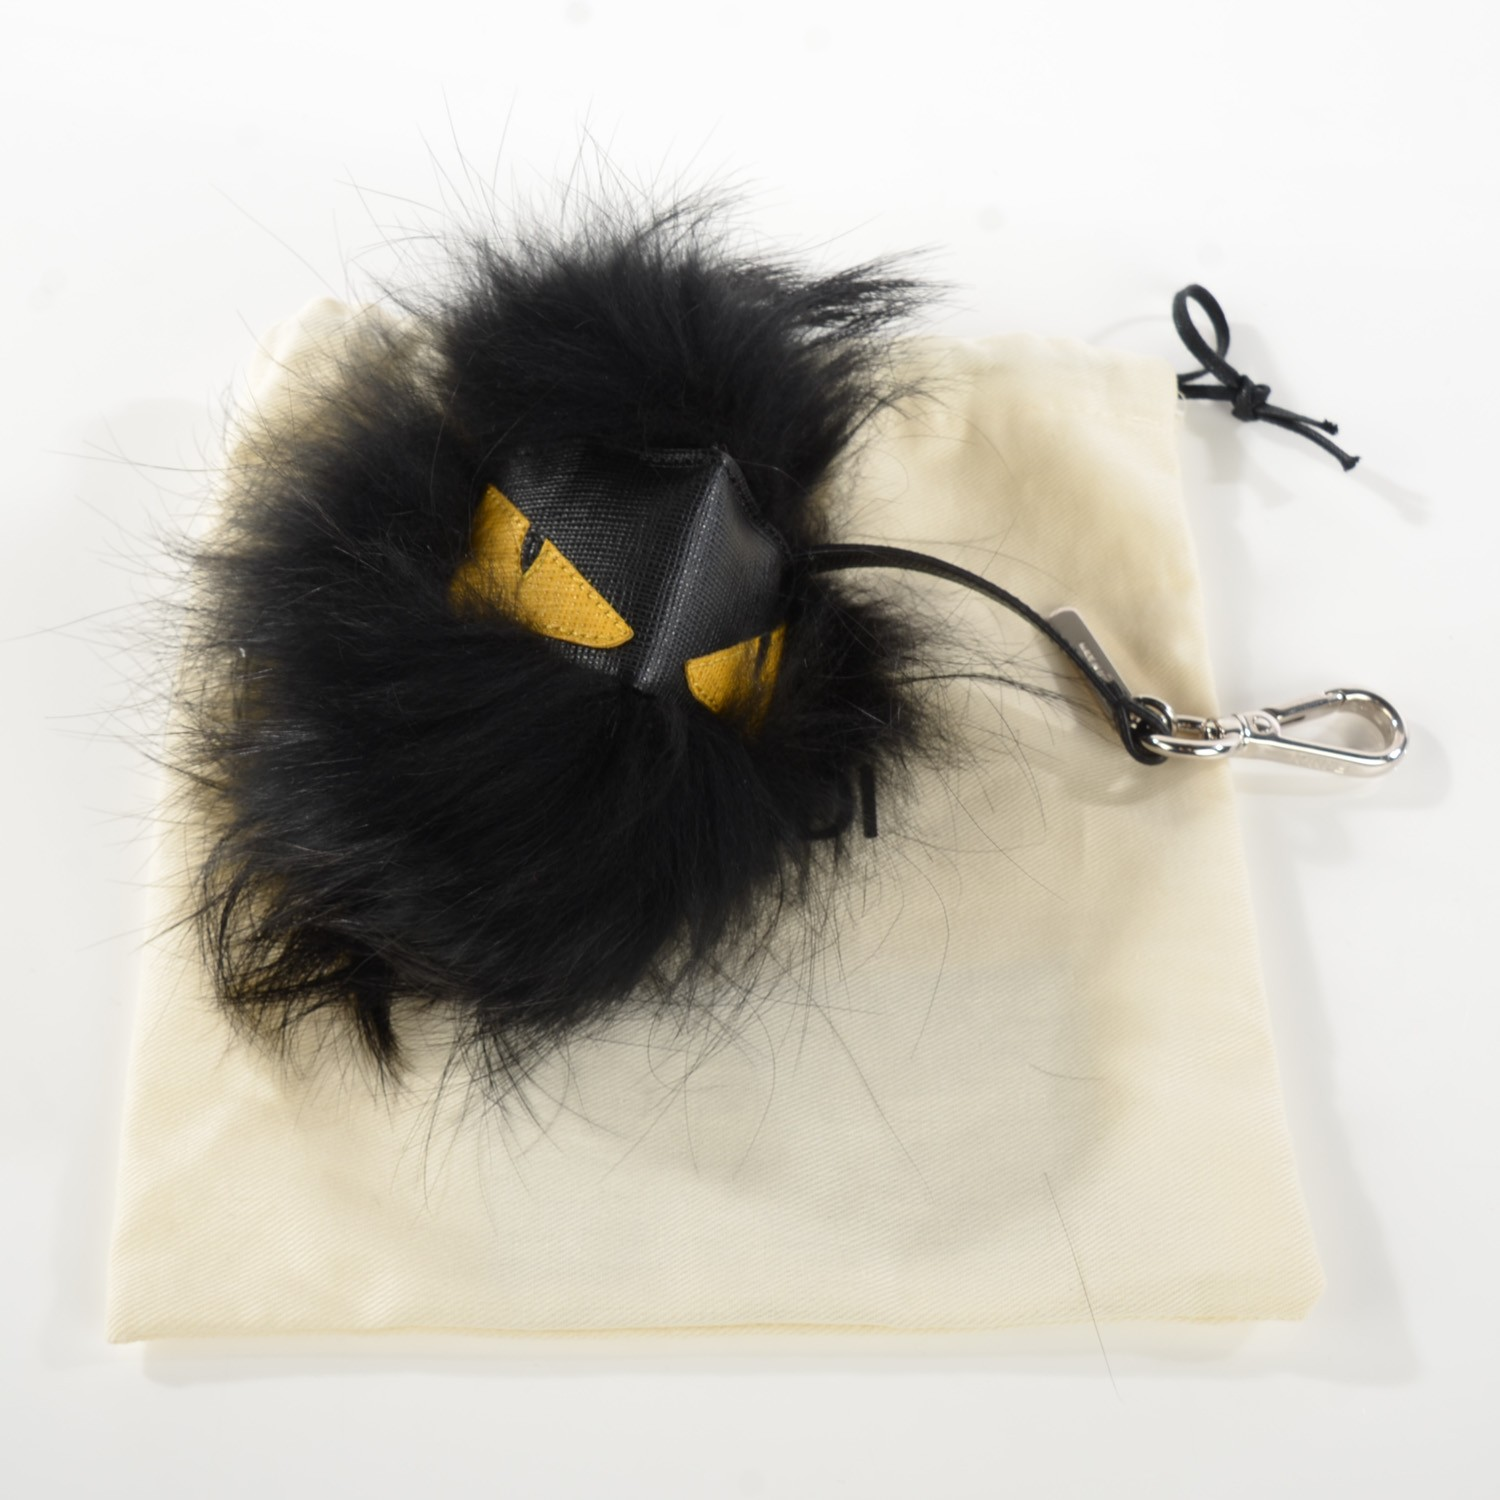 Fendi Fur Ball Keychain | Rabbit Fur Ball Keychain | Fendi Fur Monster